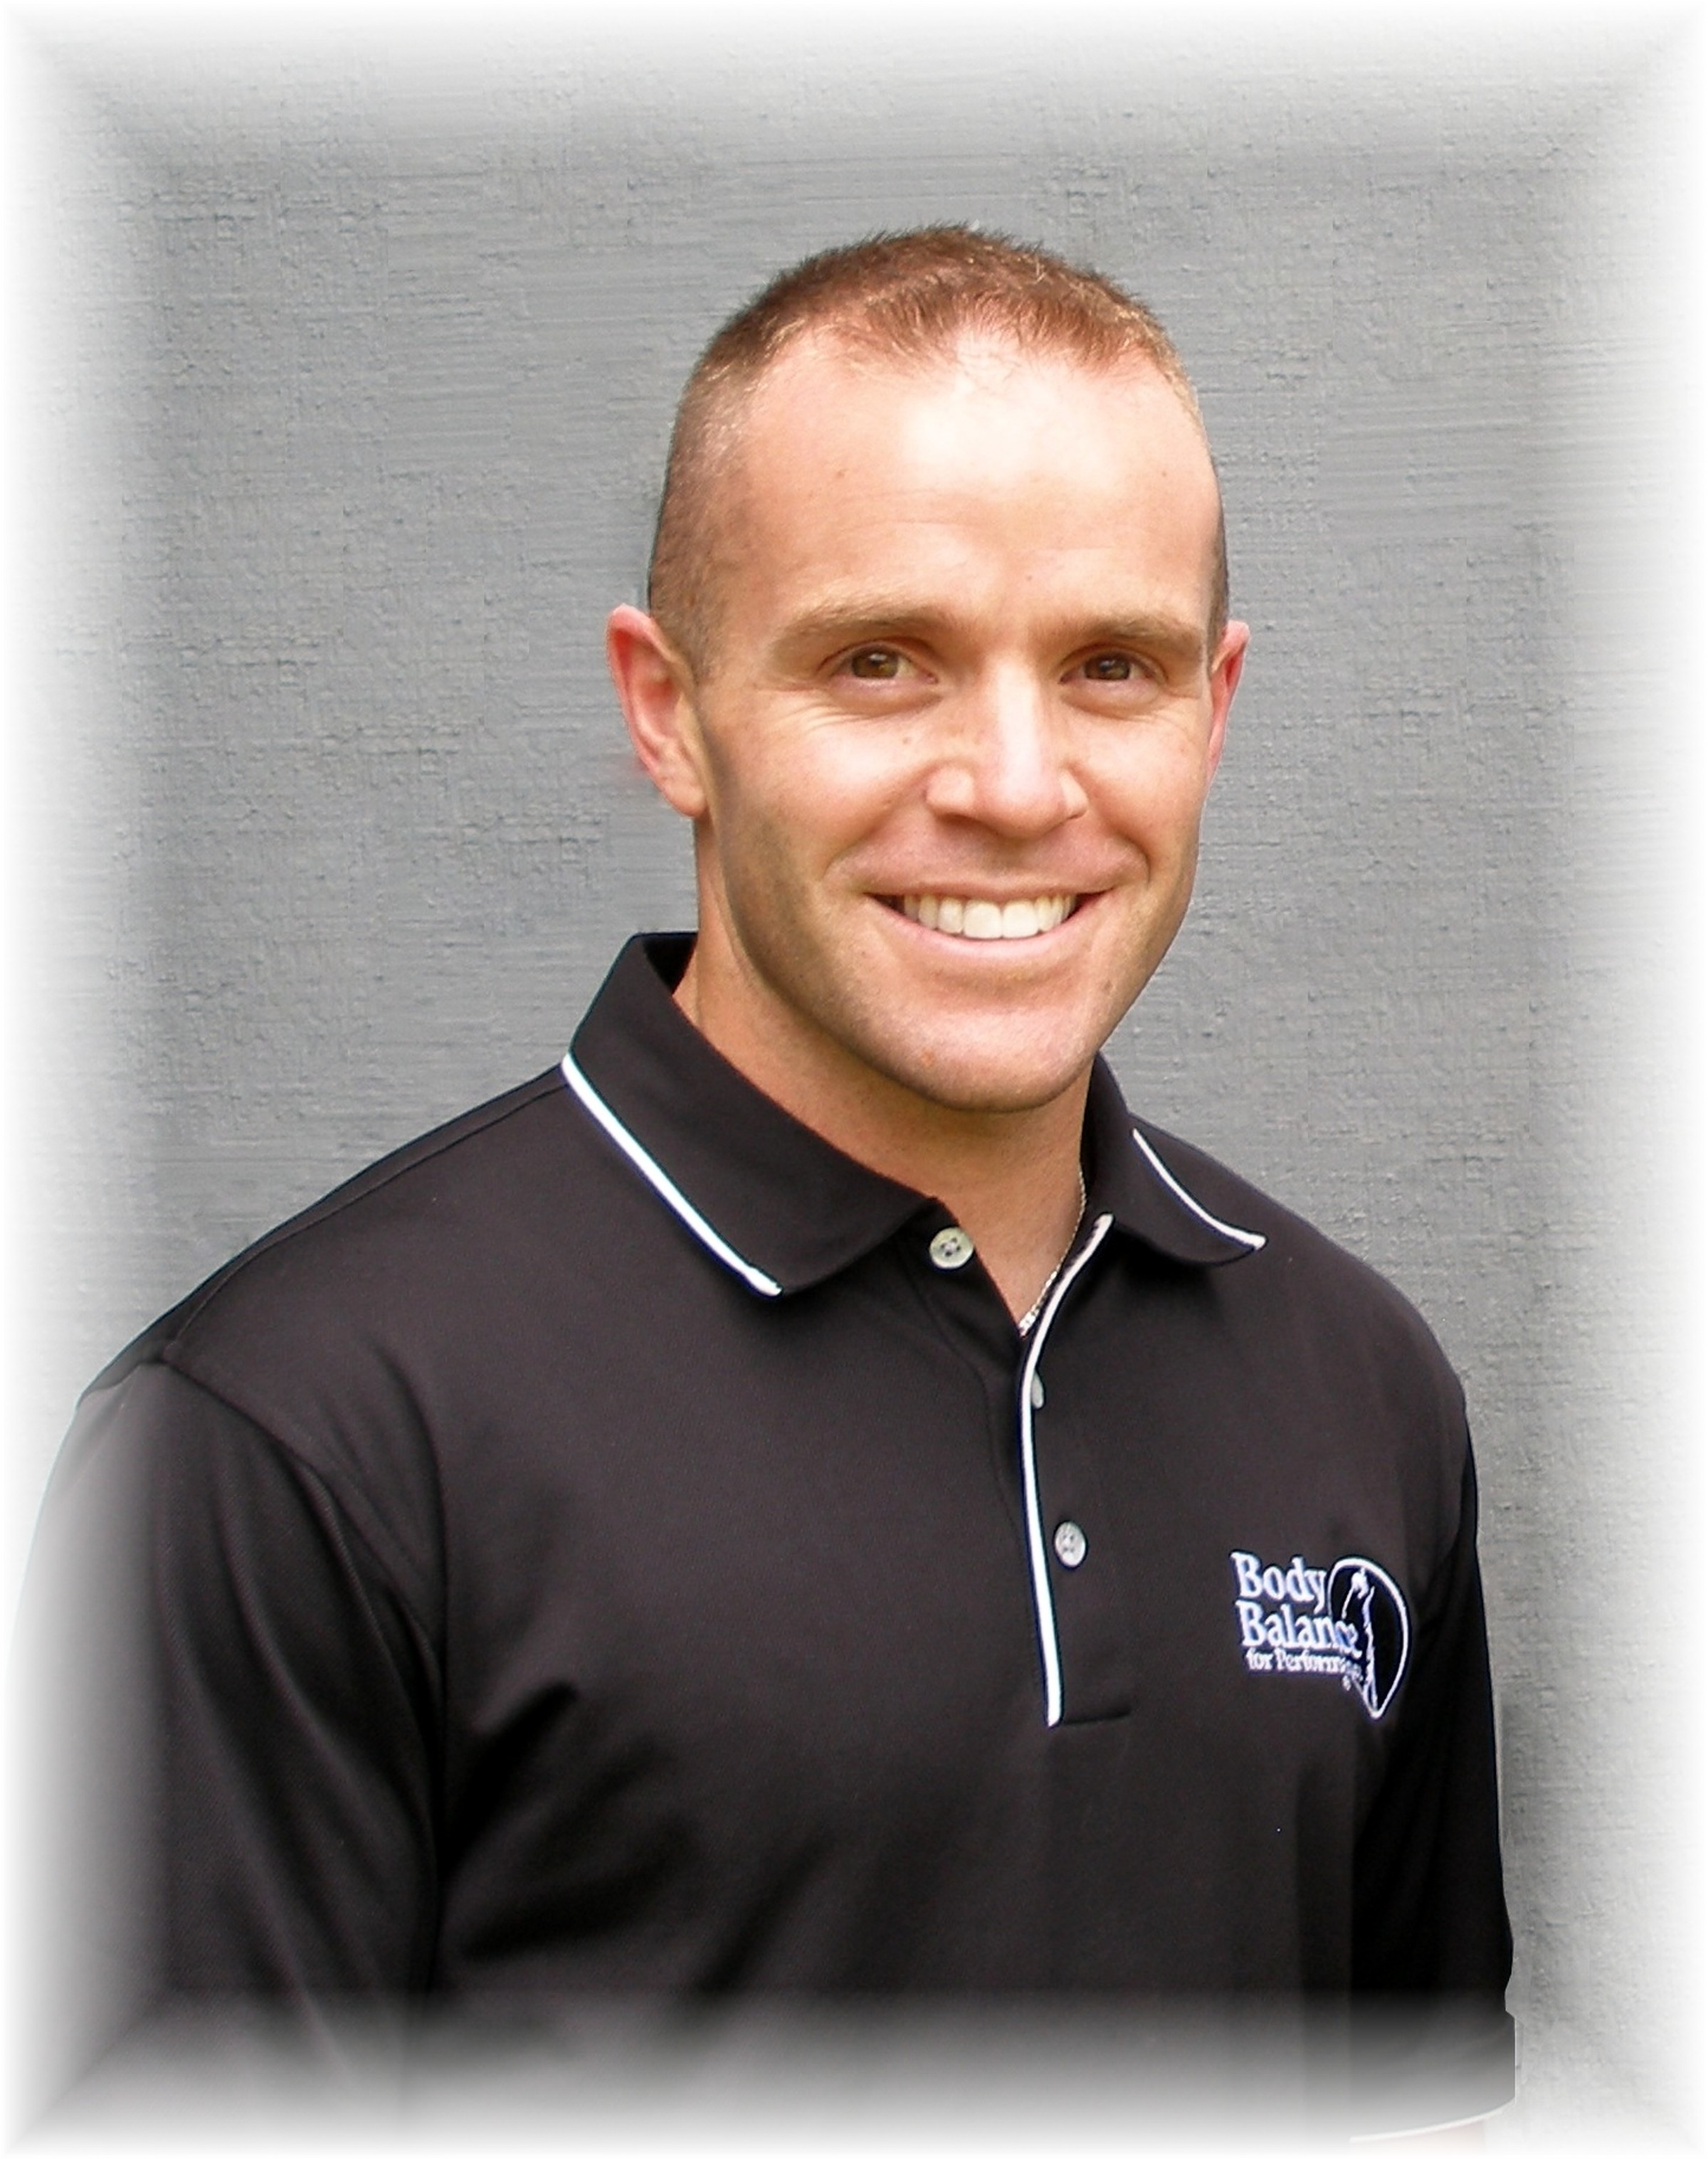 Long Beach State Physical Therapy Graduate Program